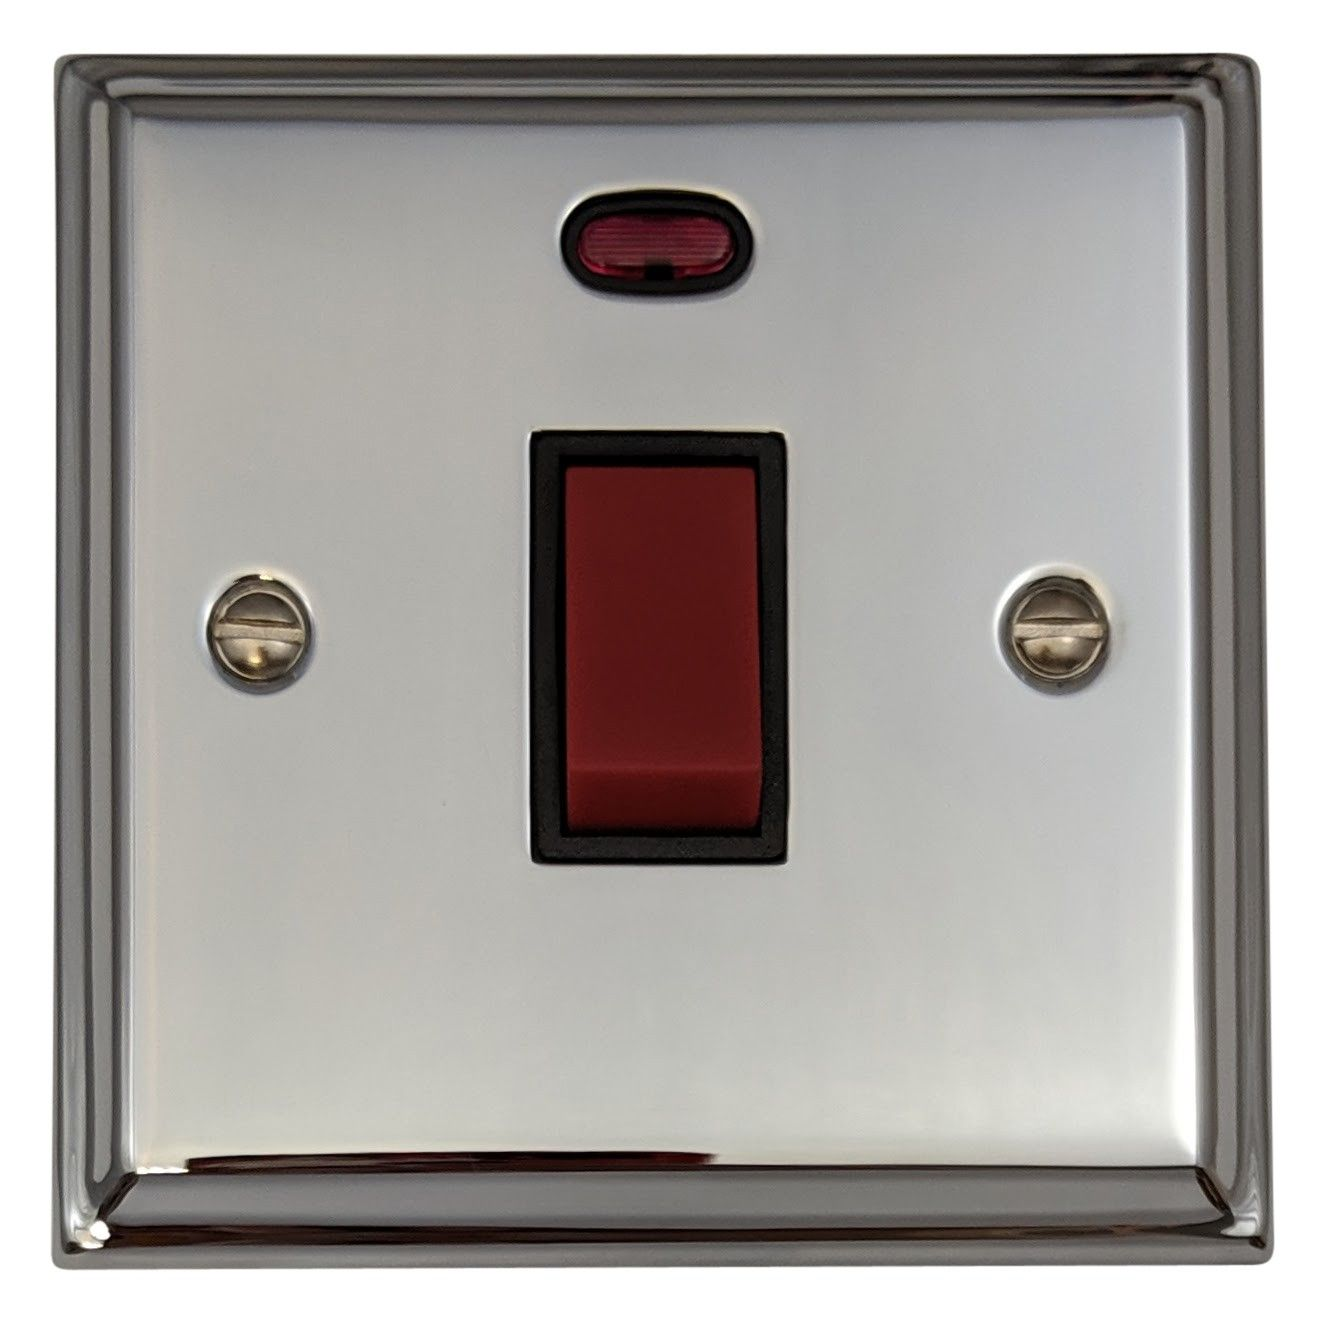 G&H DC46B Deco Plate Polished Chrome 45 Amp DP Cooker Switch & Neon Single Plate